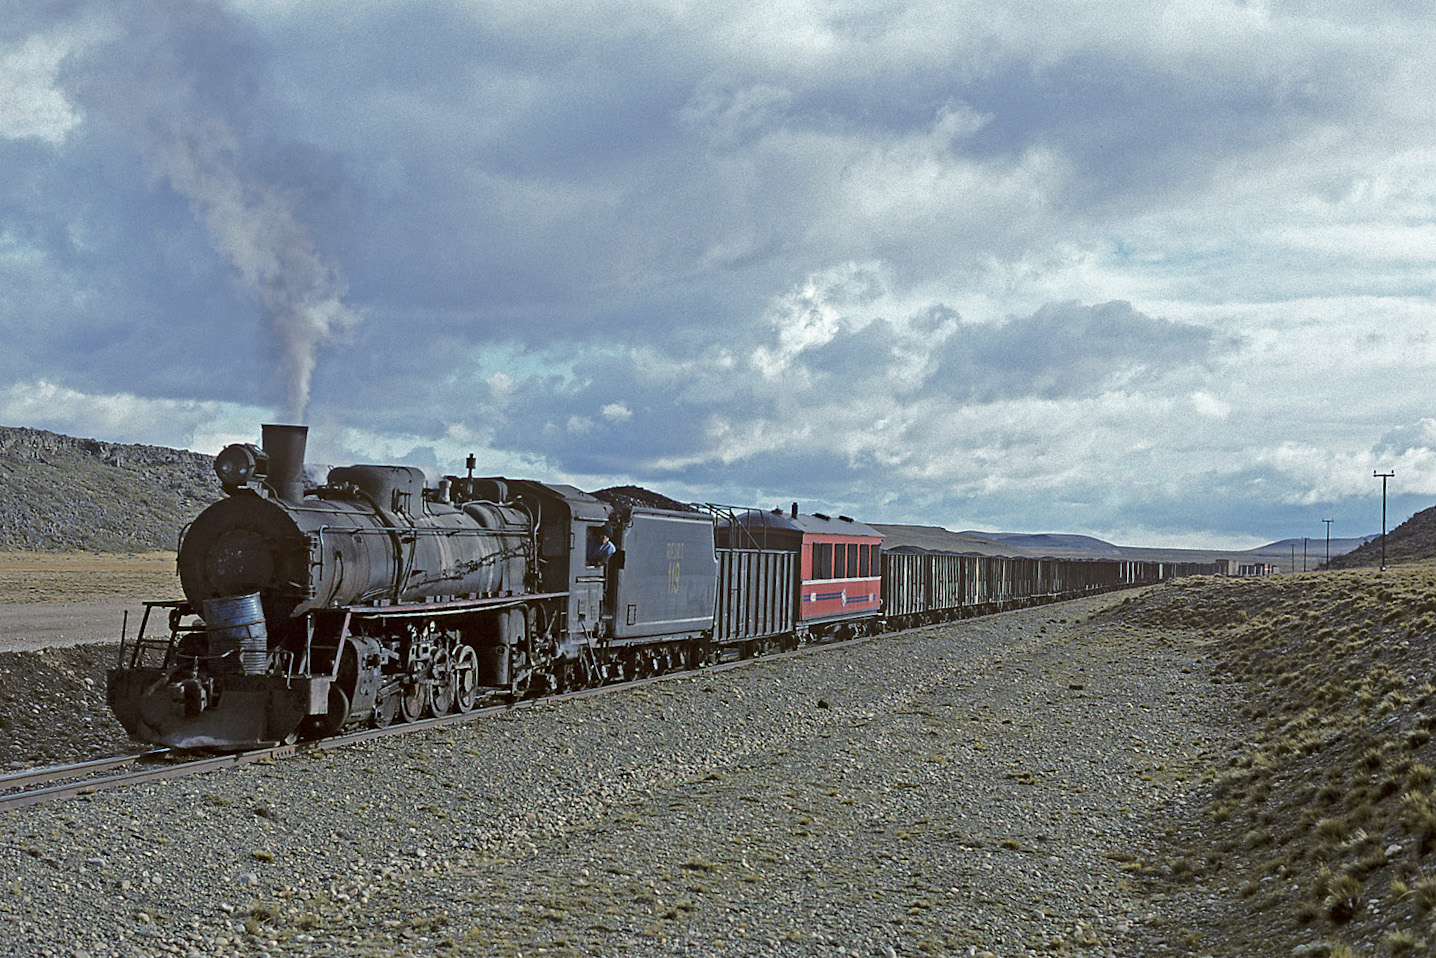 This photo by William E. Botkin shows RFIRT 119 hauling a train in 1996; it is currently one of two locomotives being rebuilt in Buenos Aires.